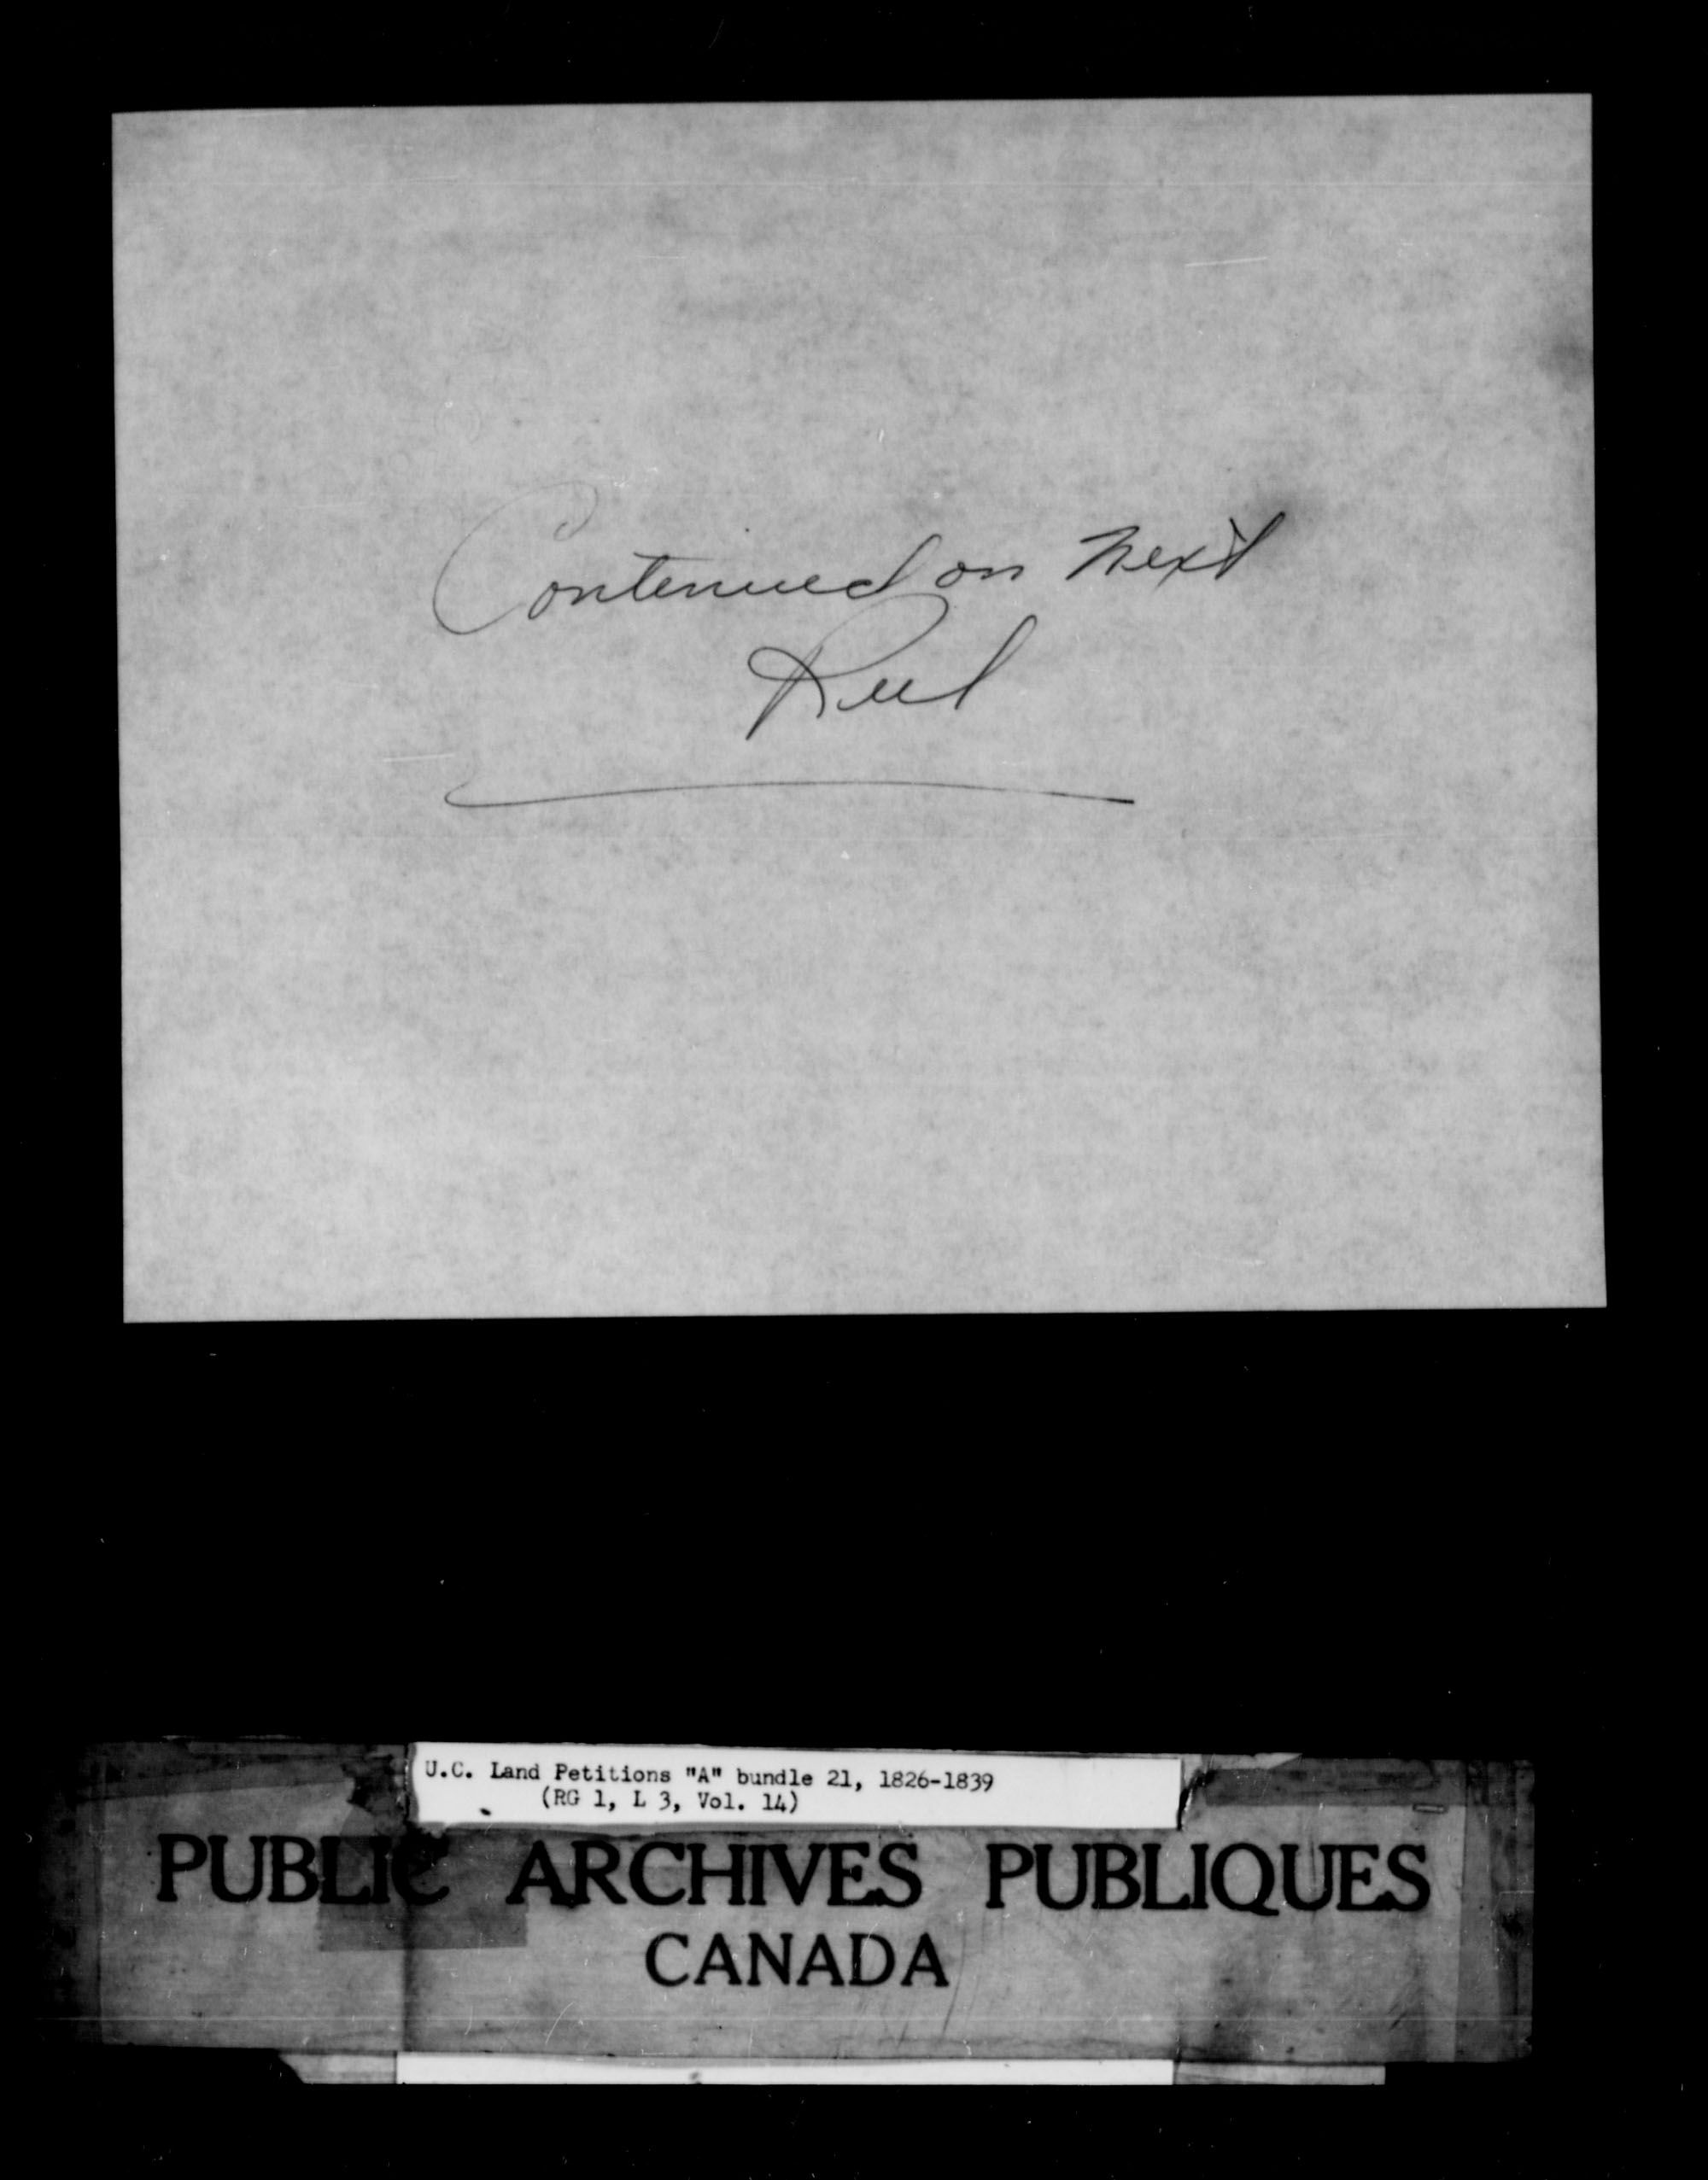 Title: Upper Canada Land Petitions (1763-1865) - Mikan Number: 205131 - Microform: c-1613